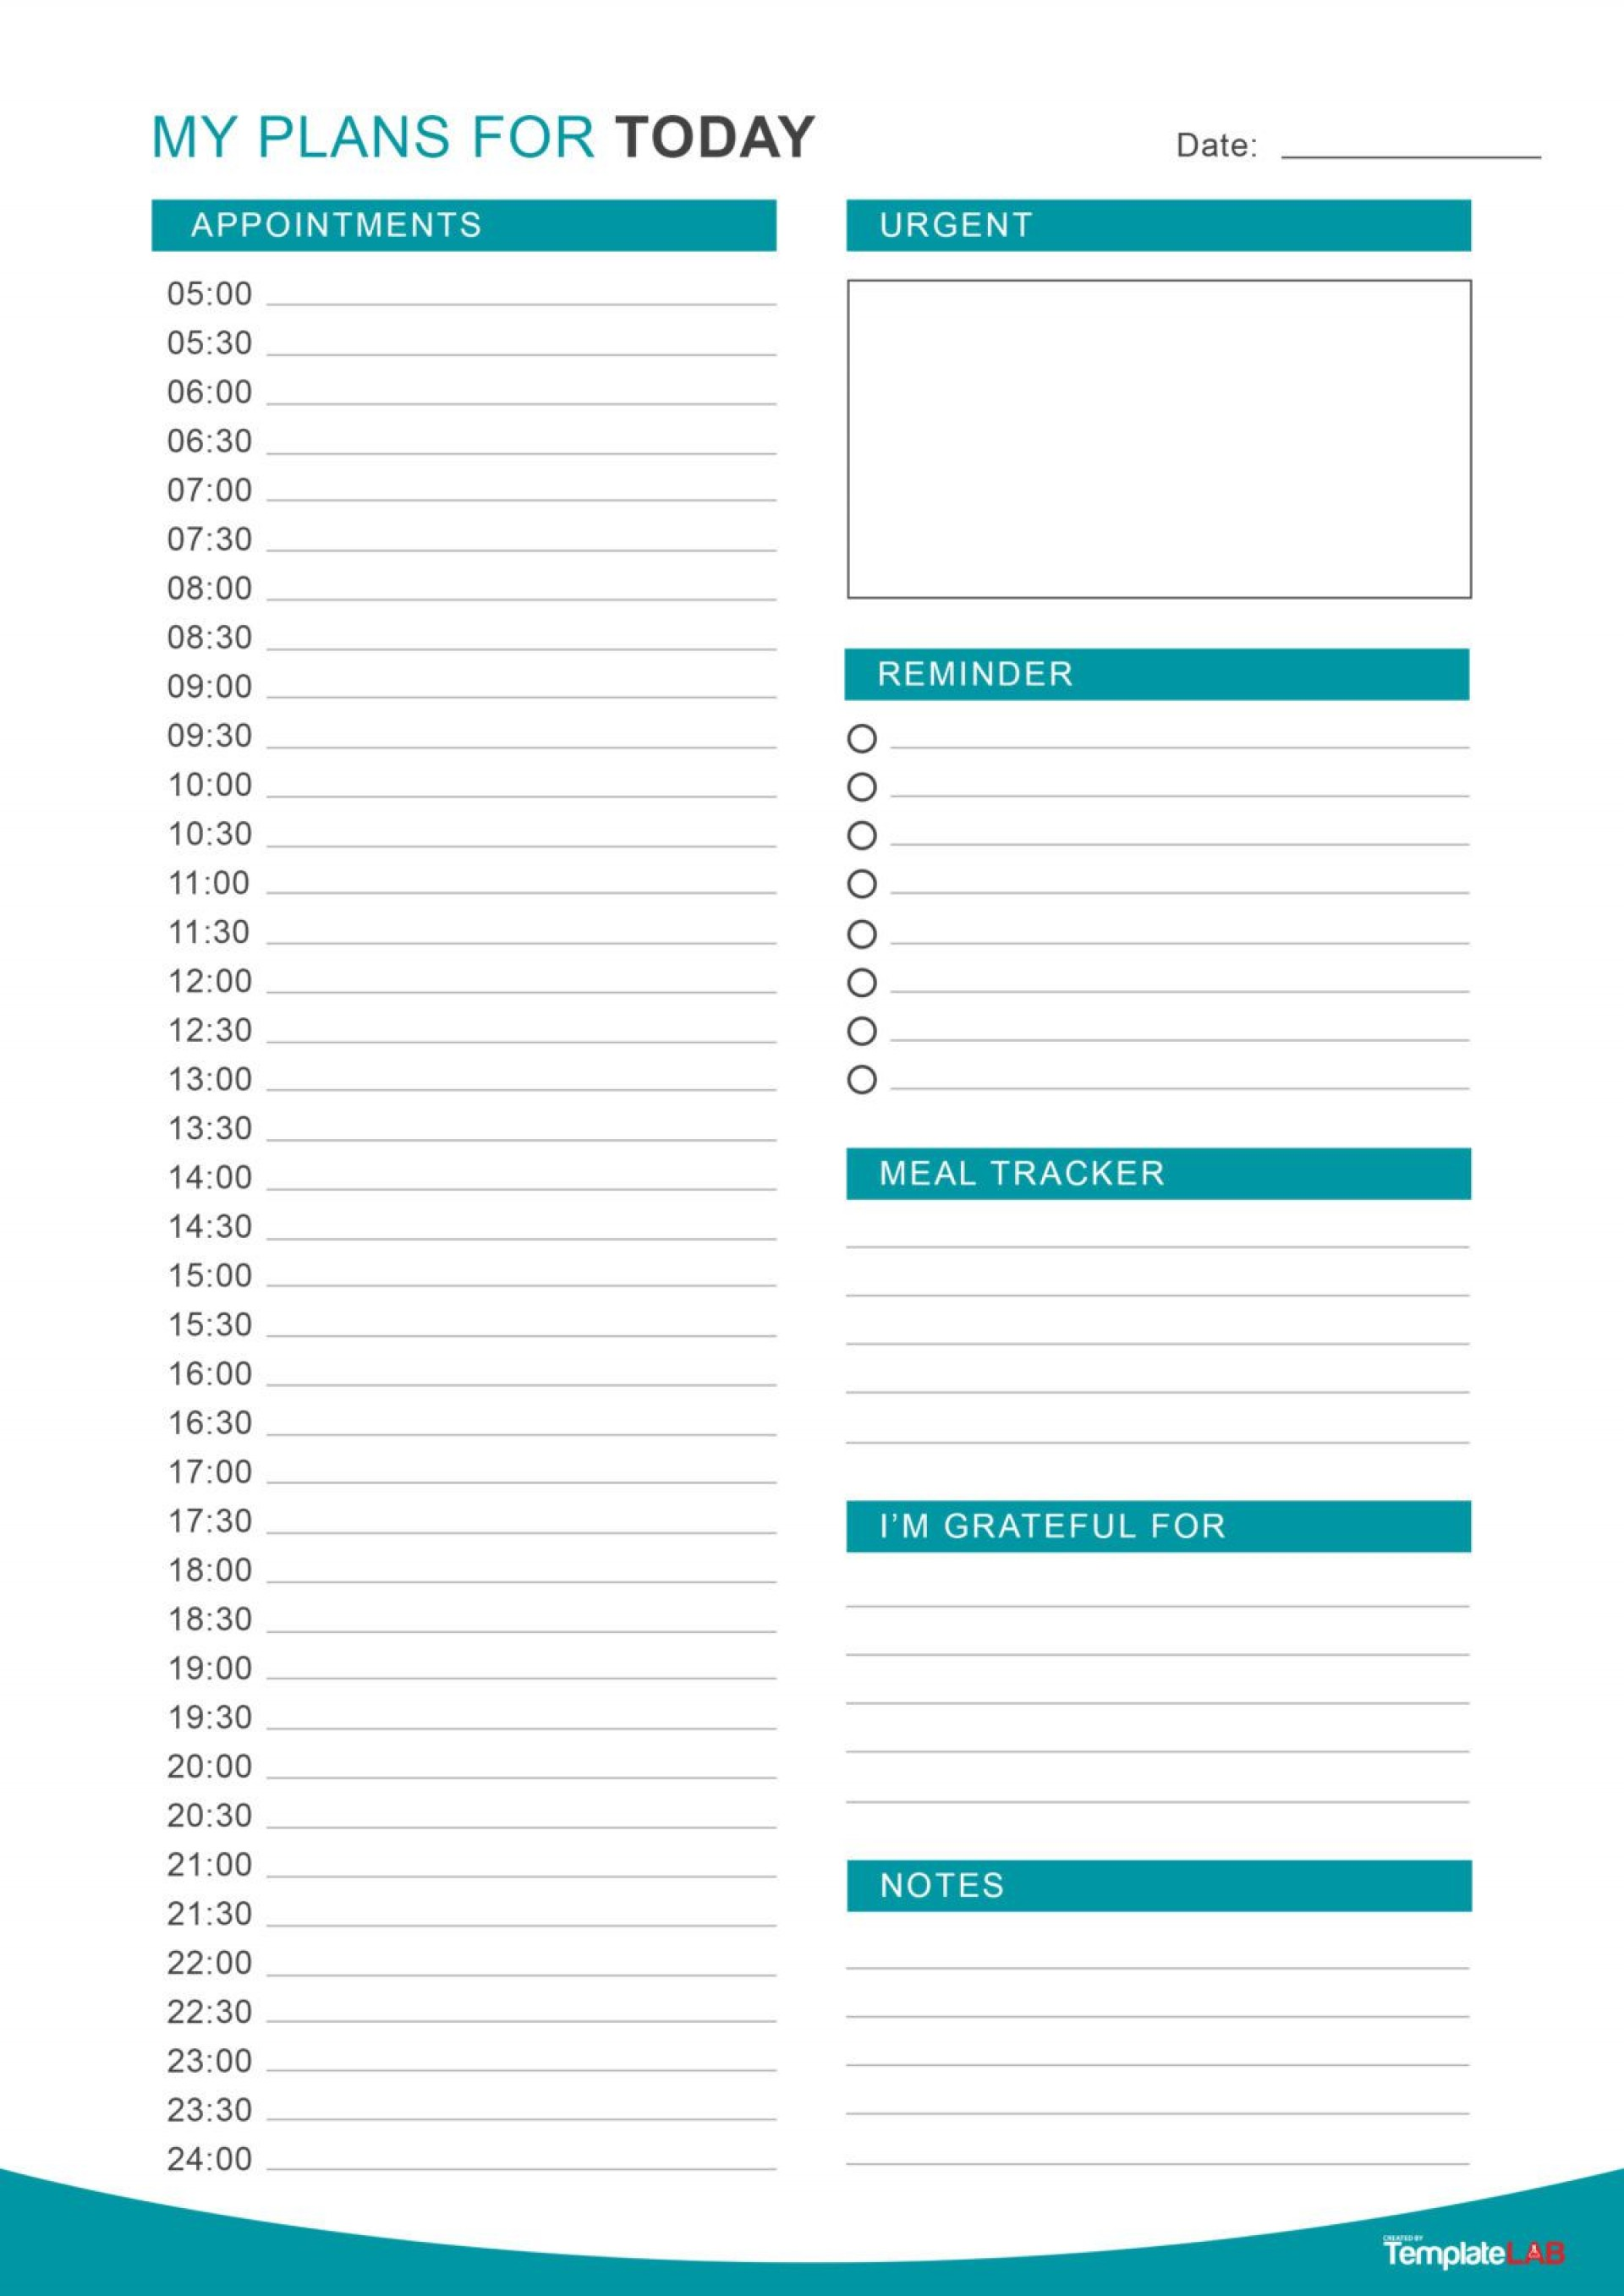 006 Unforgettable Real Estate Daily Planner Template Concept 1920